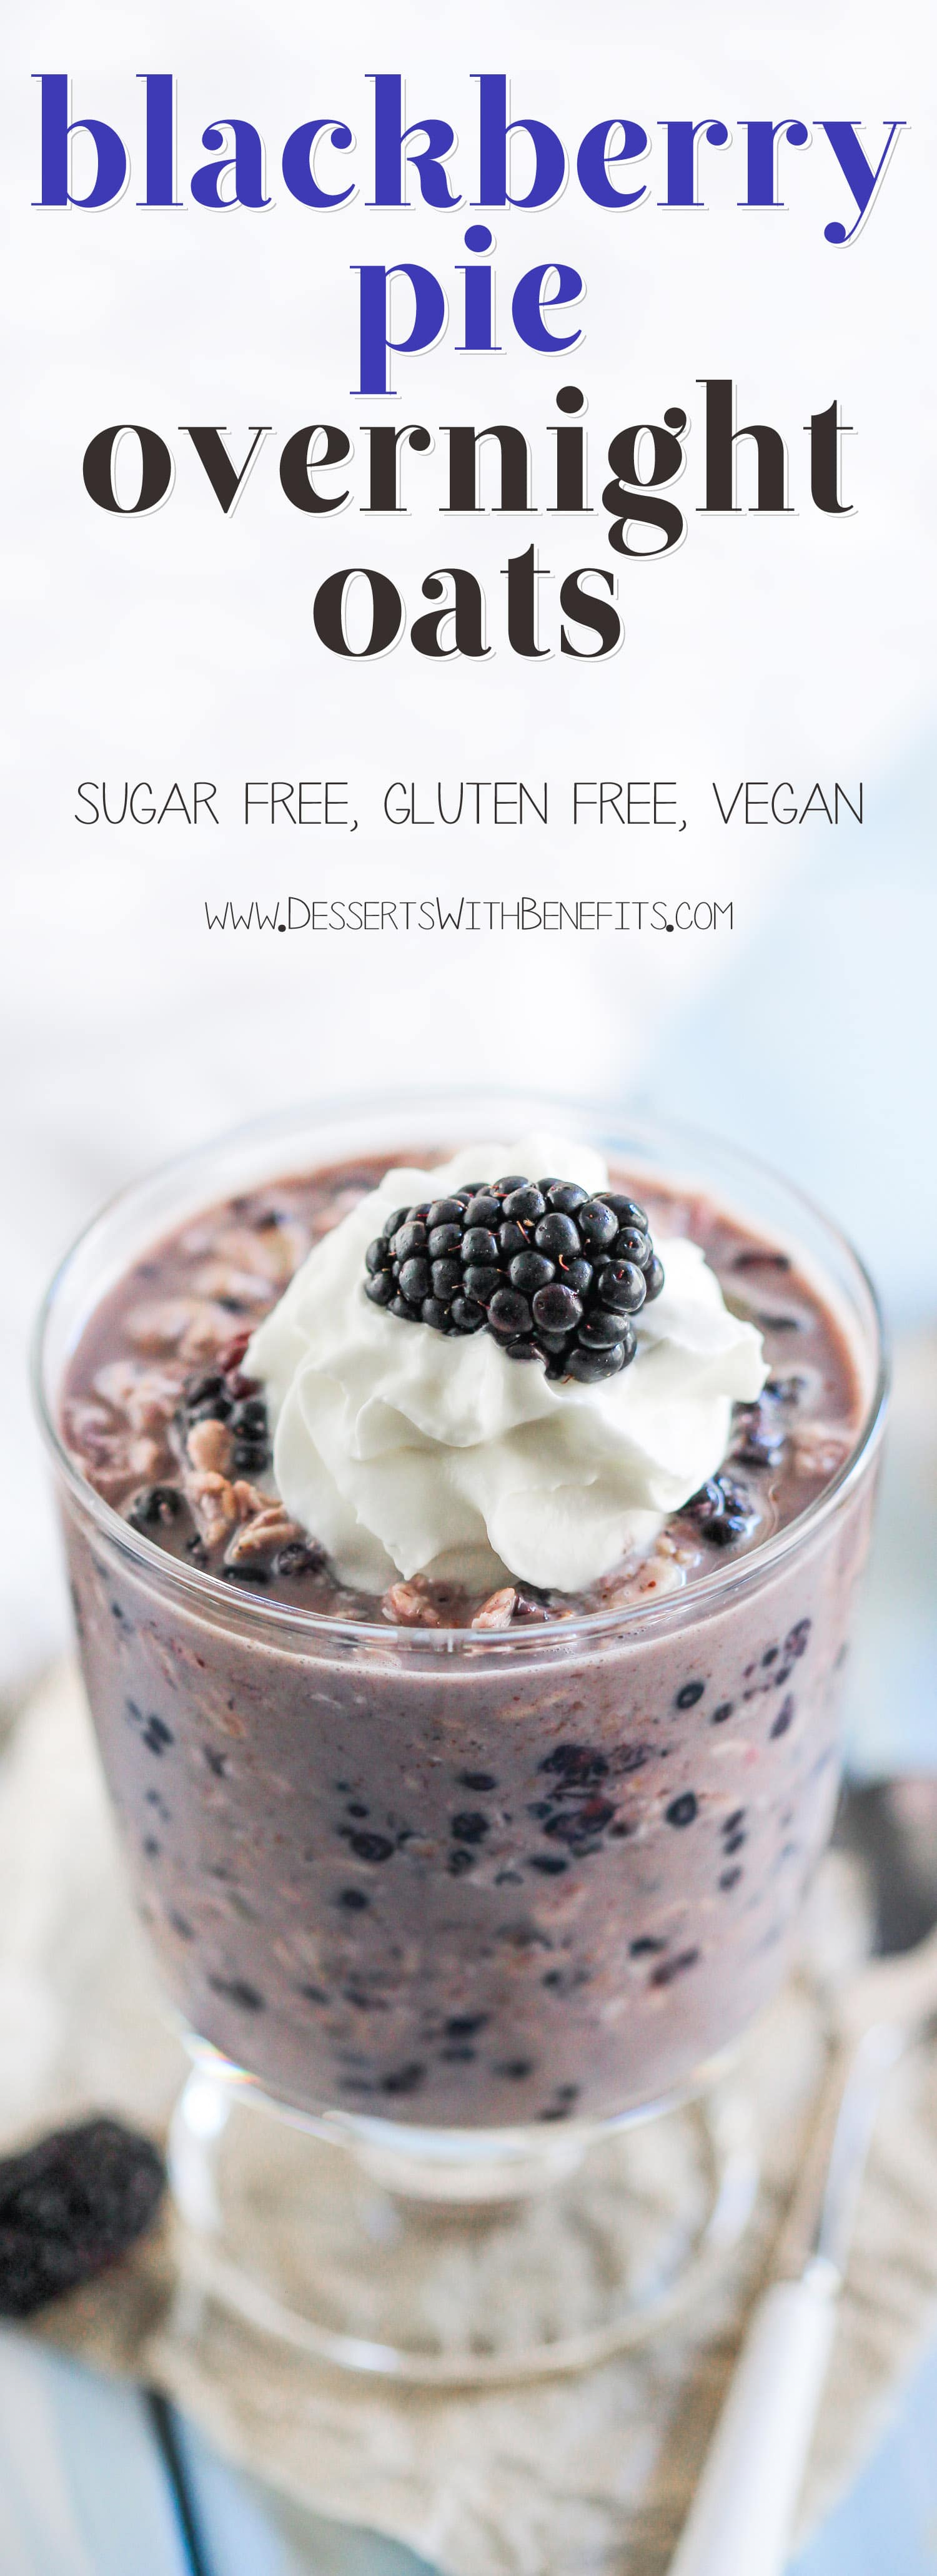 Make a batch of Healthy Blackberry Pie Overnight Dessert Oats! All the flavor of blackberry pie, all the sweetness of a dessert, with all the healthfulness and nutrition of oatmeal. Win-win-win. Oh, and it's refined sugar free, low fat, gluten free, and vegan too! Healthy Dessert Recipes at the Desserts With Benefits Blog